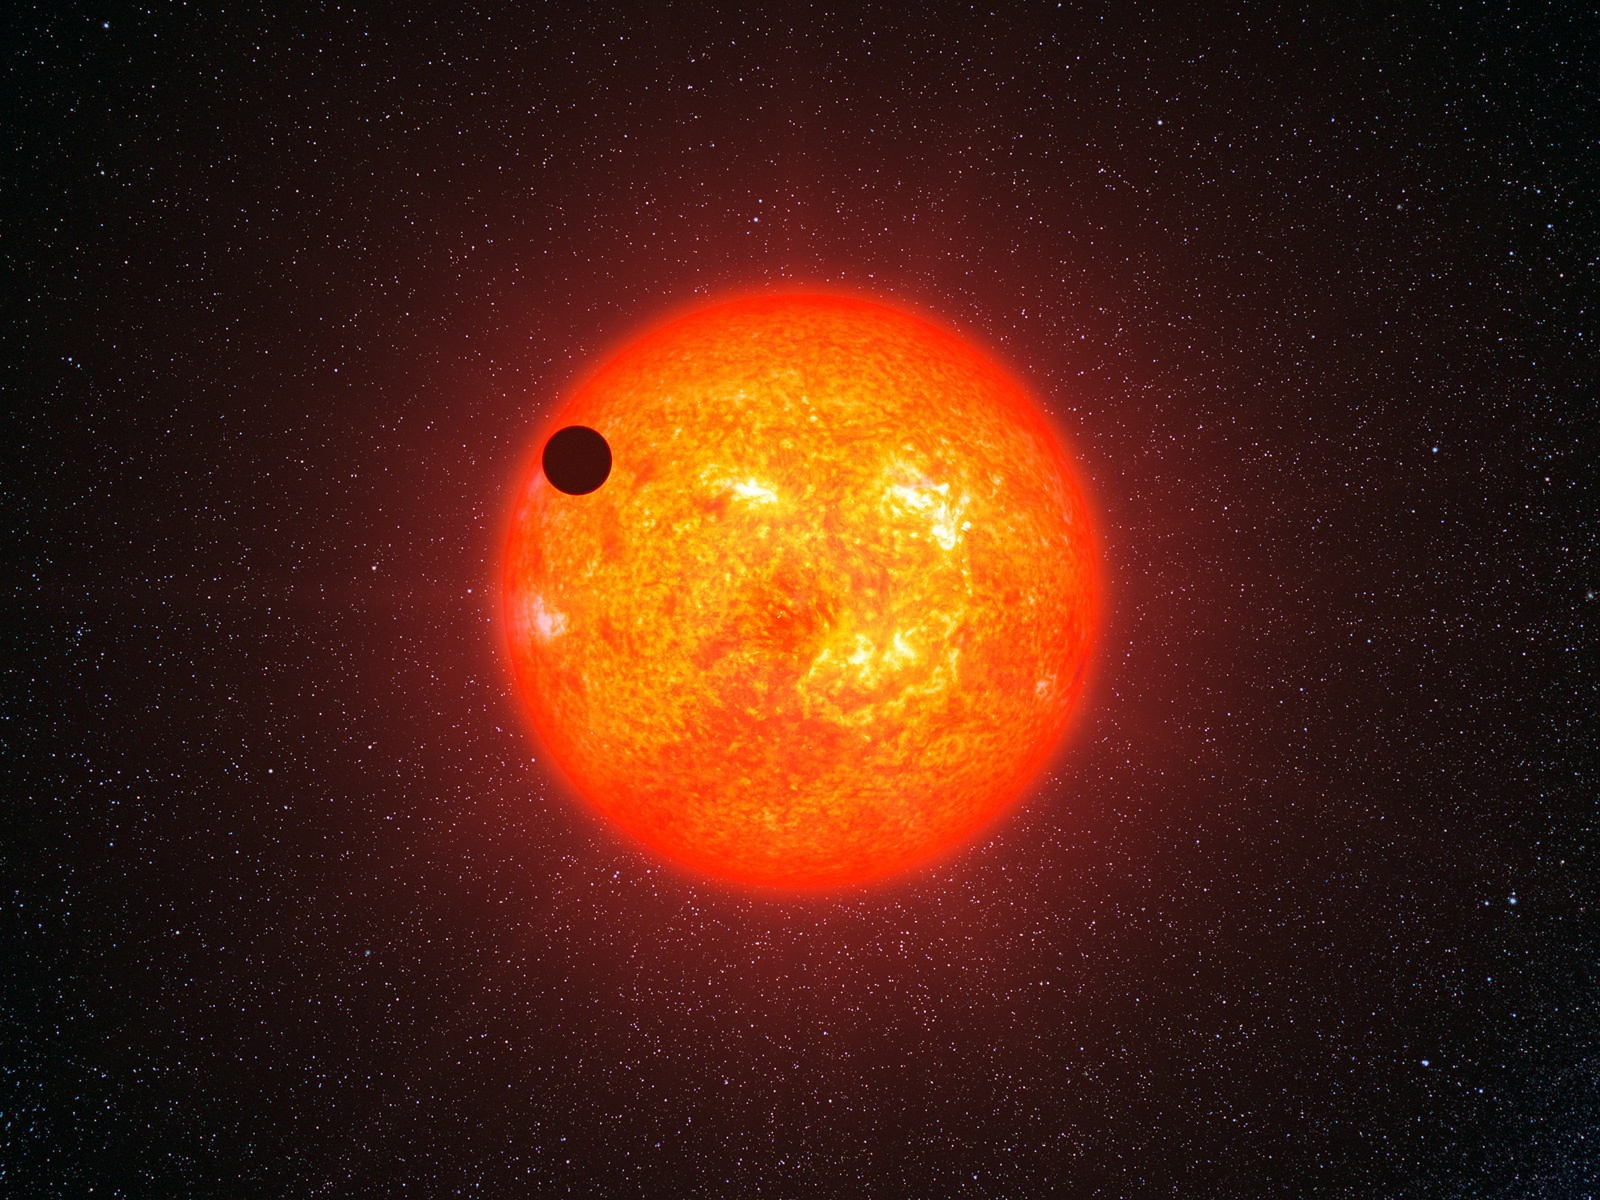 Super Earth Exoplanet GJ 1214 B